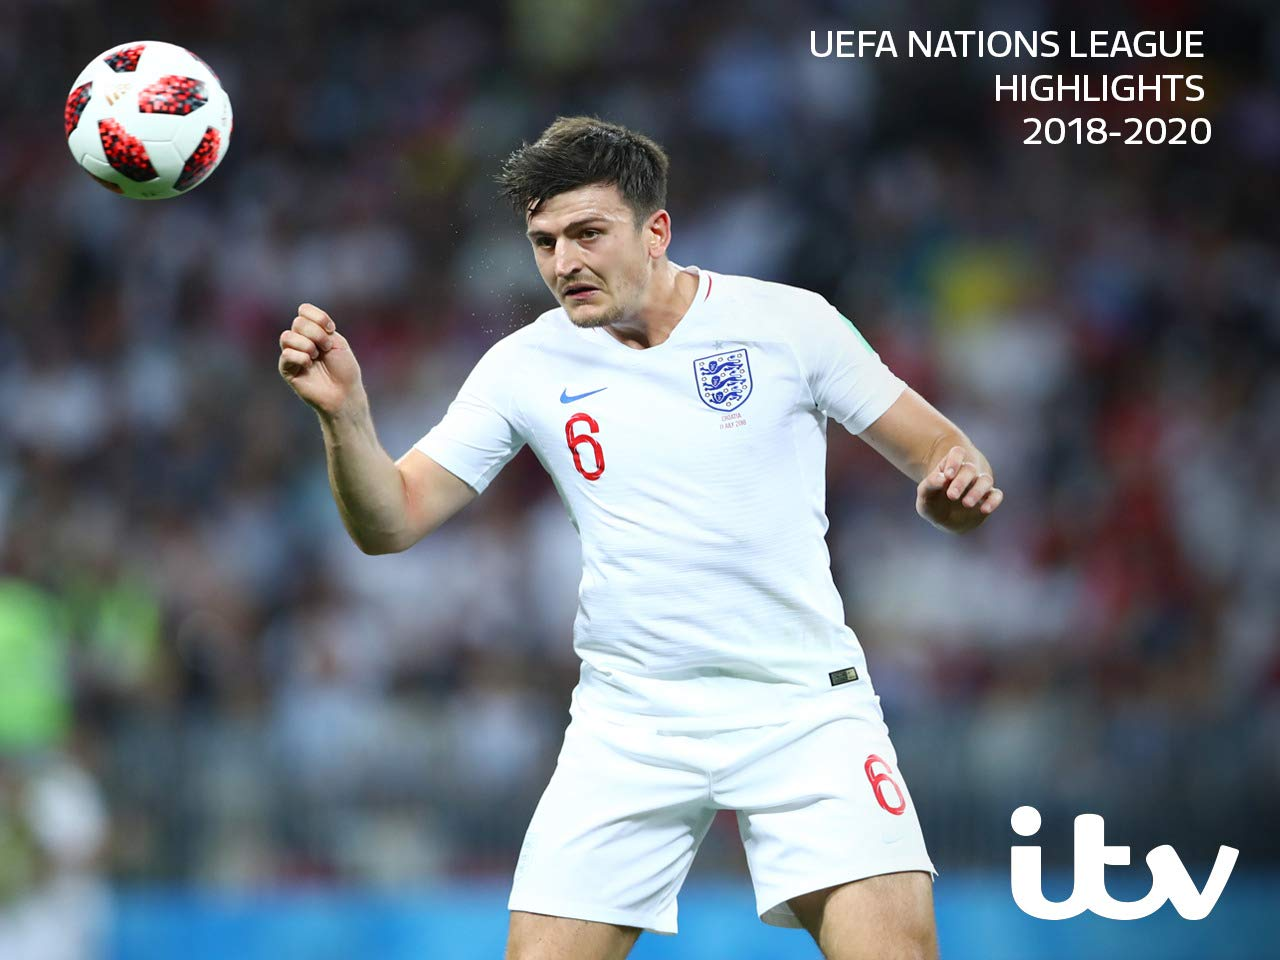 Watch Uefa Nations League Highlights 2018 2020 Prime Video